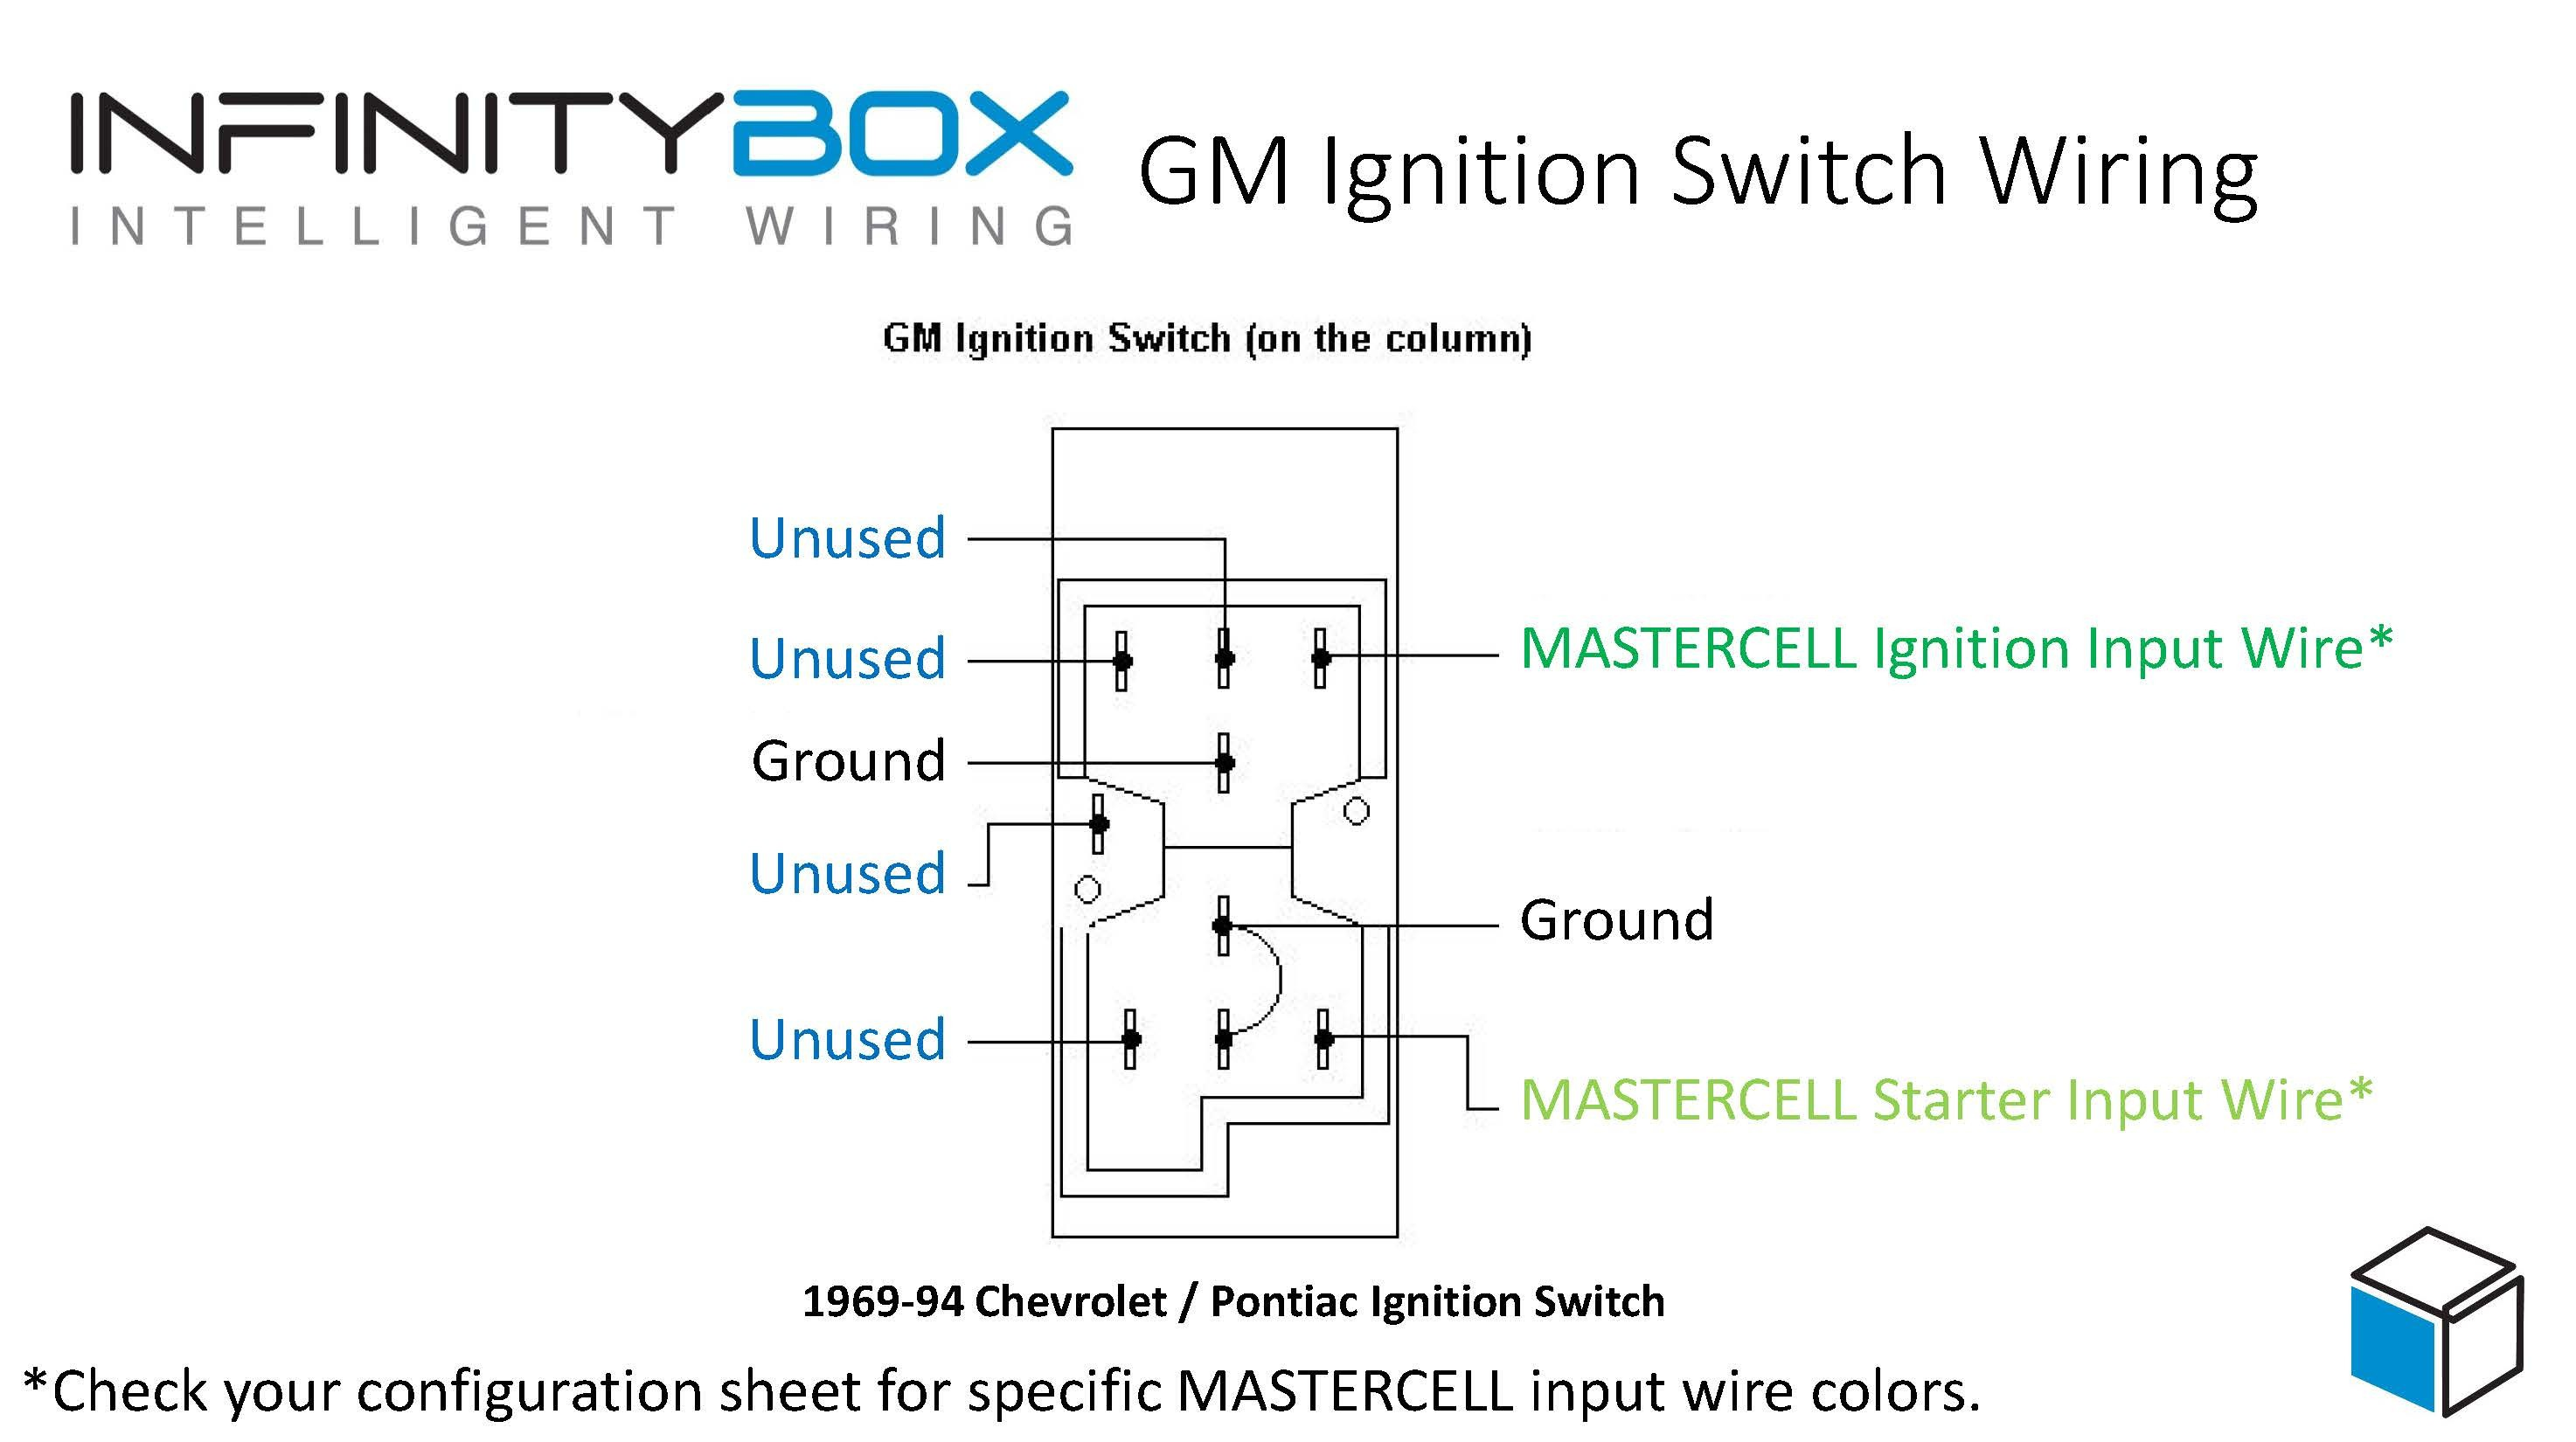 Universal relay wiring diagram potter brumfield relay wiring jpg 2947x1650  Universal ipphil horn relay rib picturesque